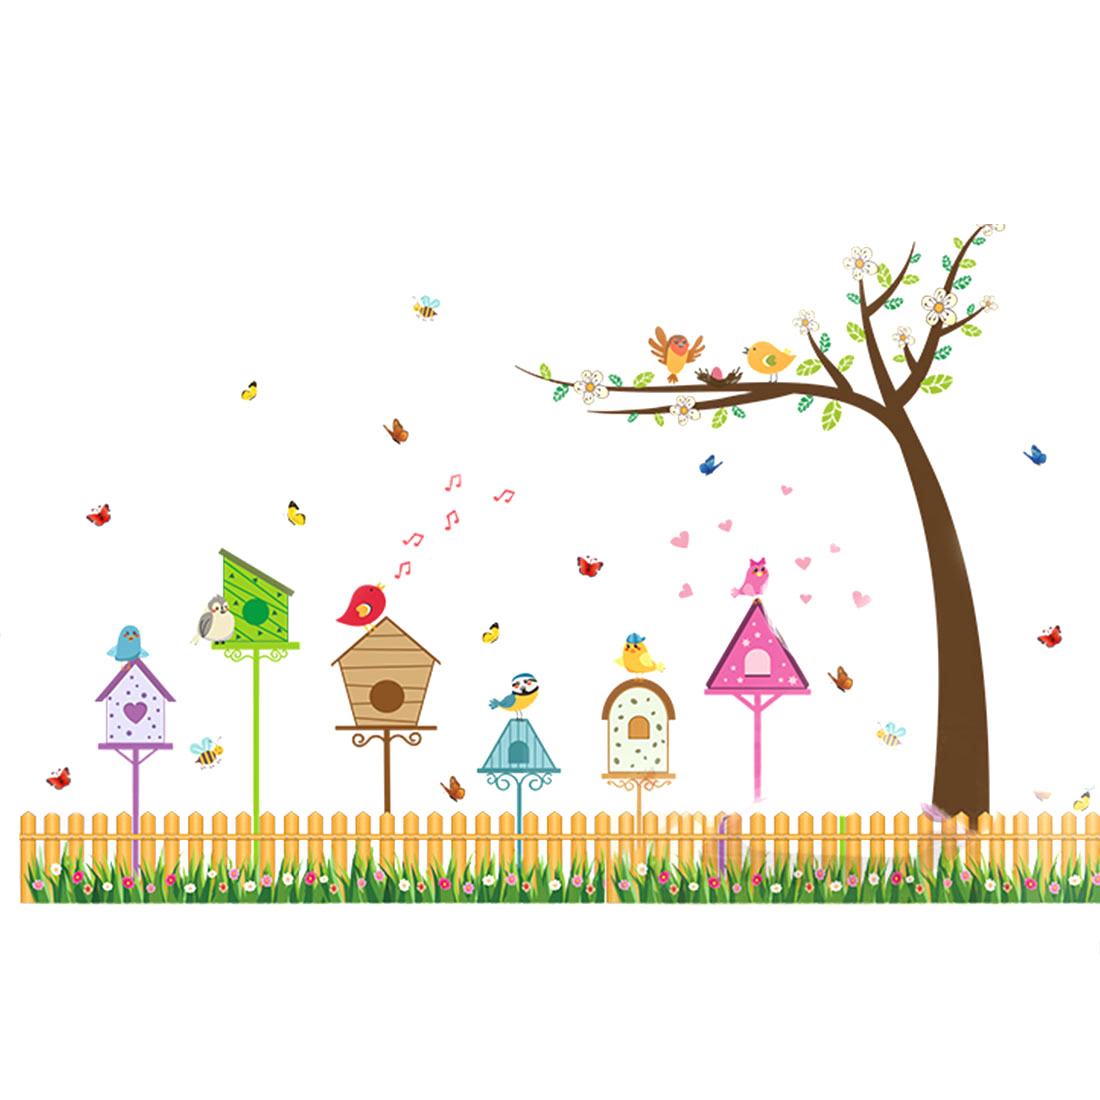 Household PVC Fence Birds Pattern Self-adhesive Decoration Wall Sticker Colorful